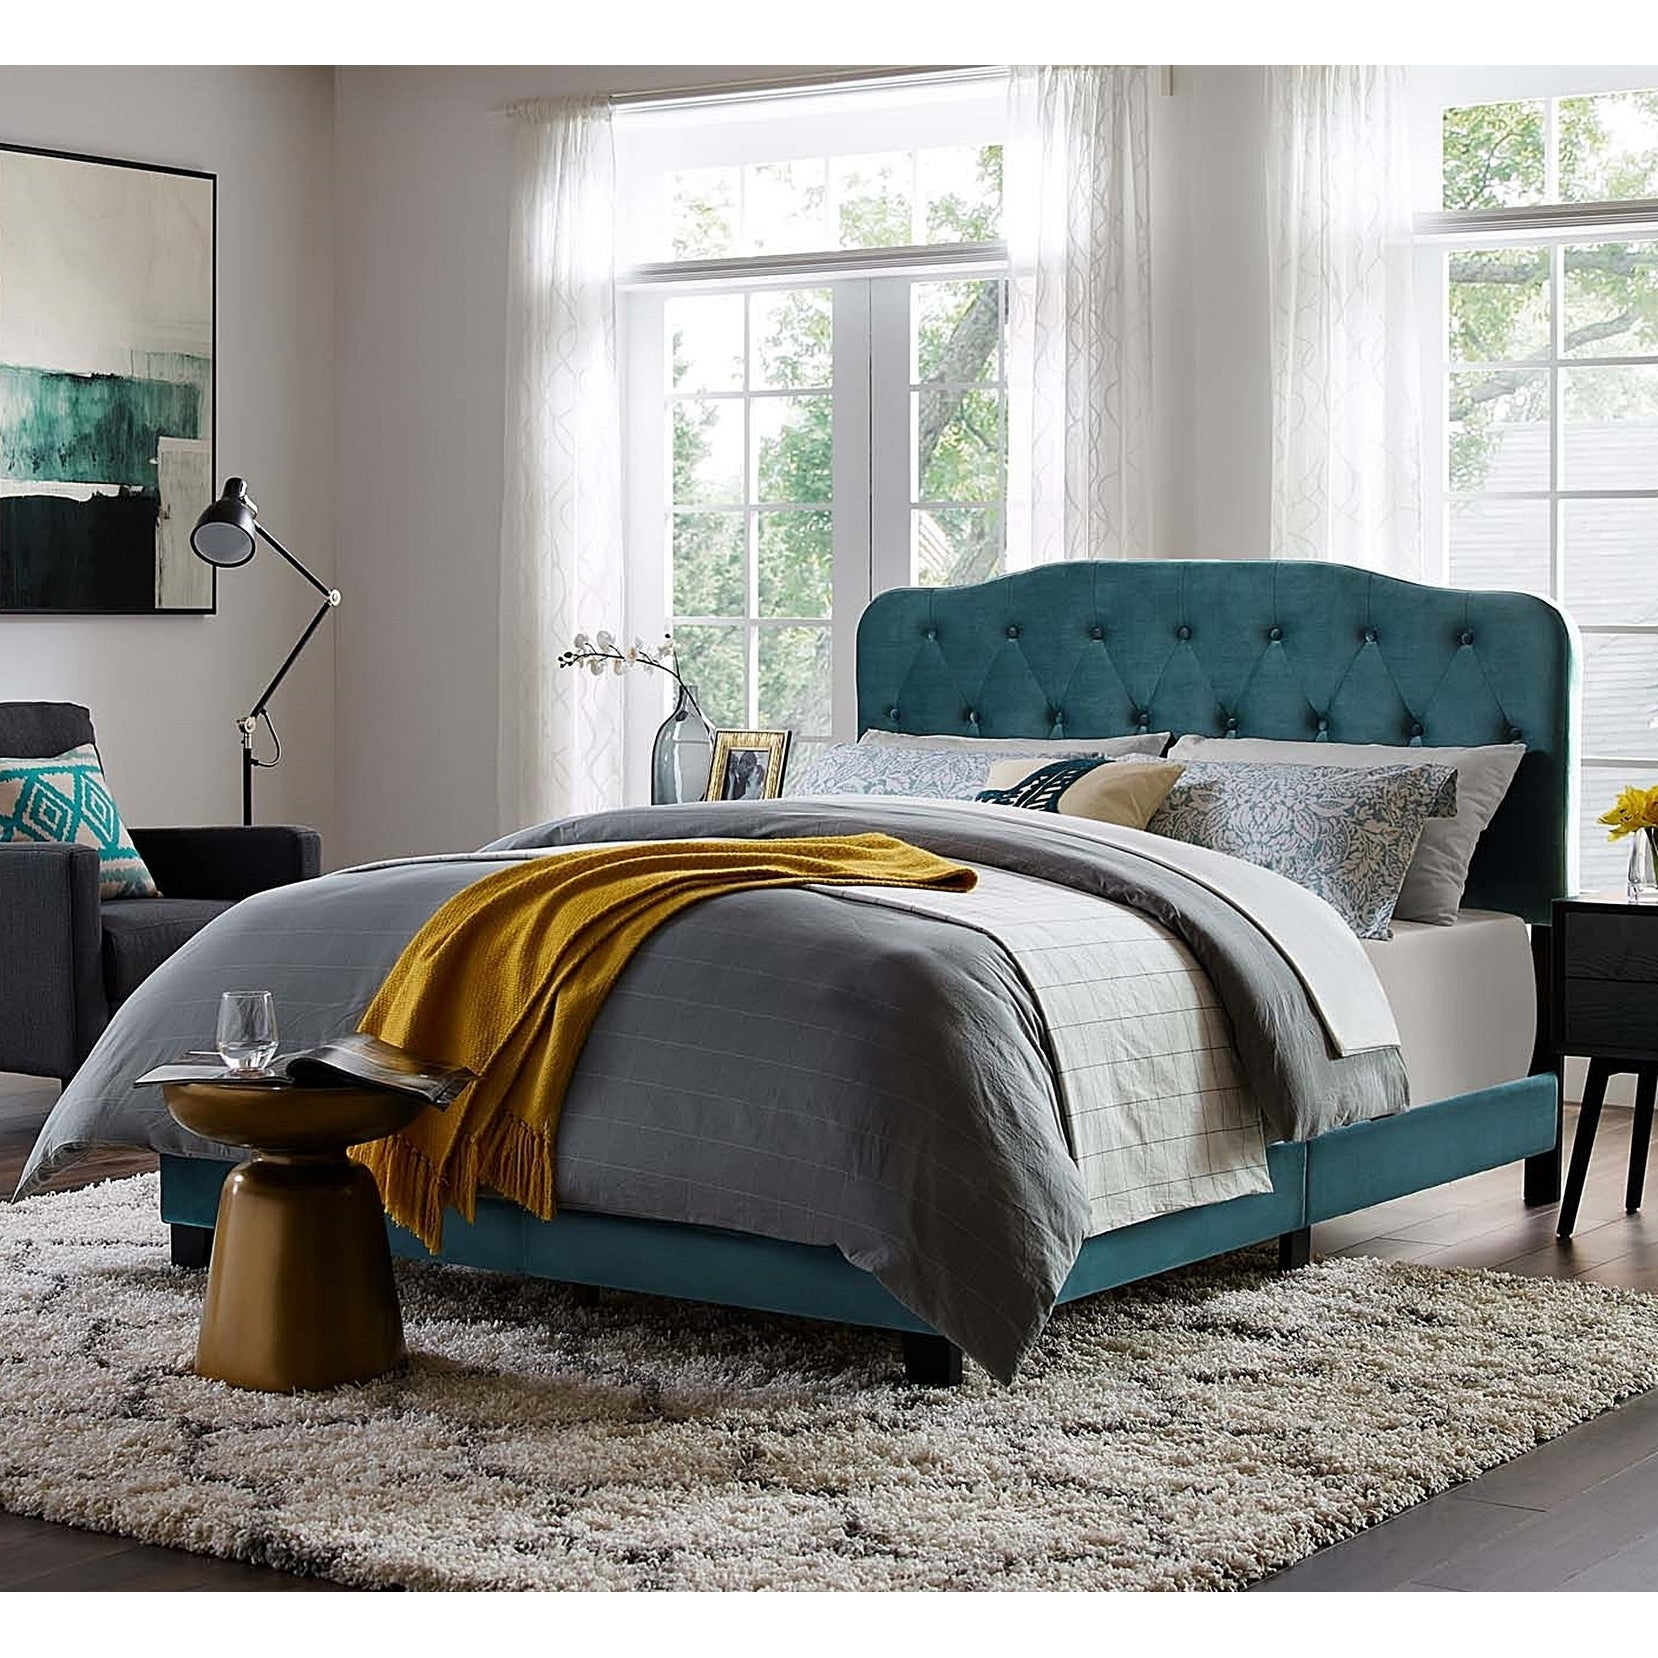 Dayton King Size Teal Velvet Platform Bed With Button Tufted Headboard Overstock 28247651